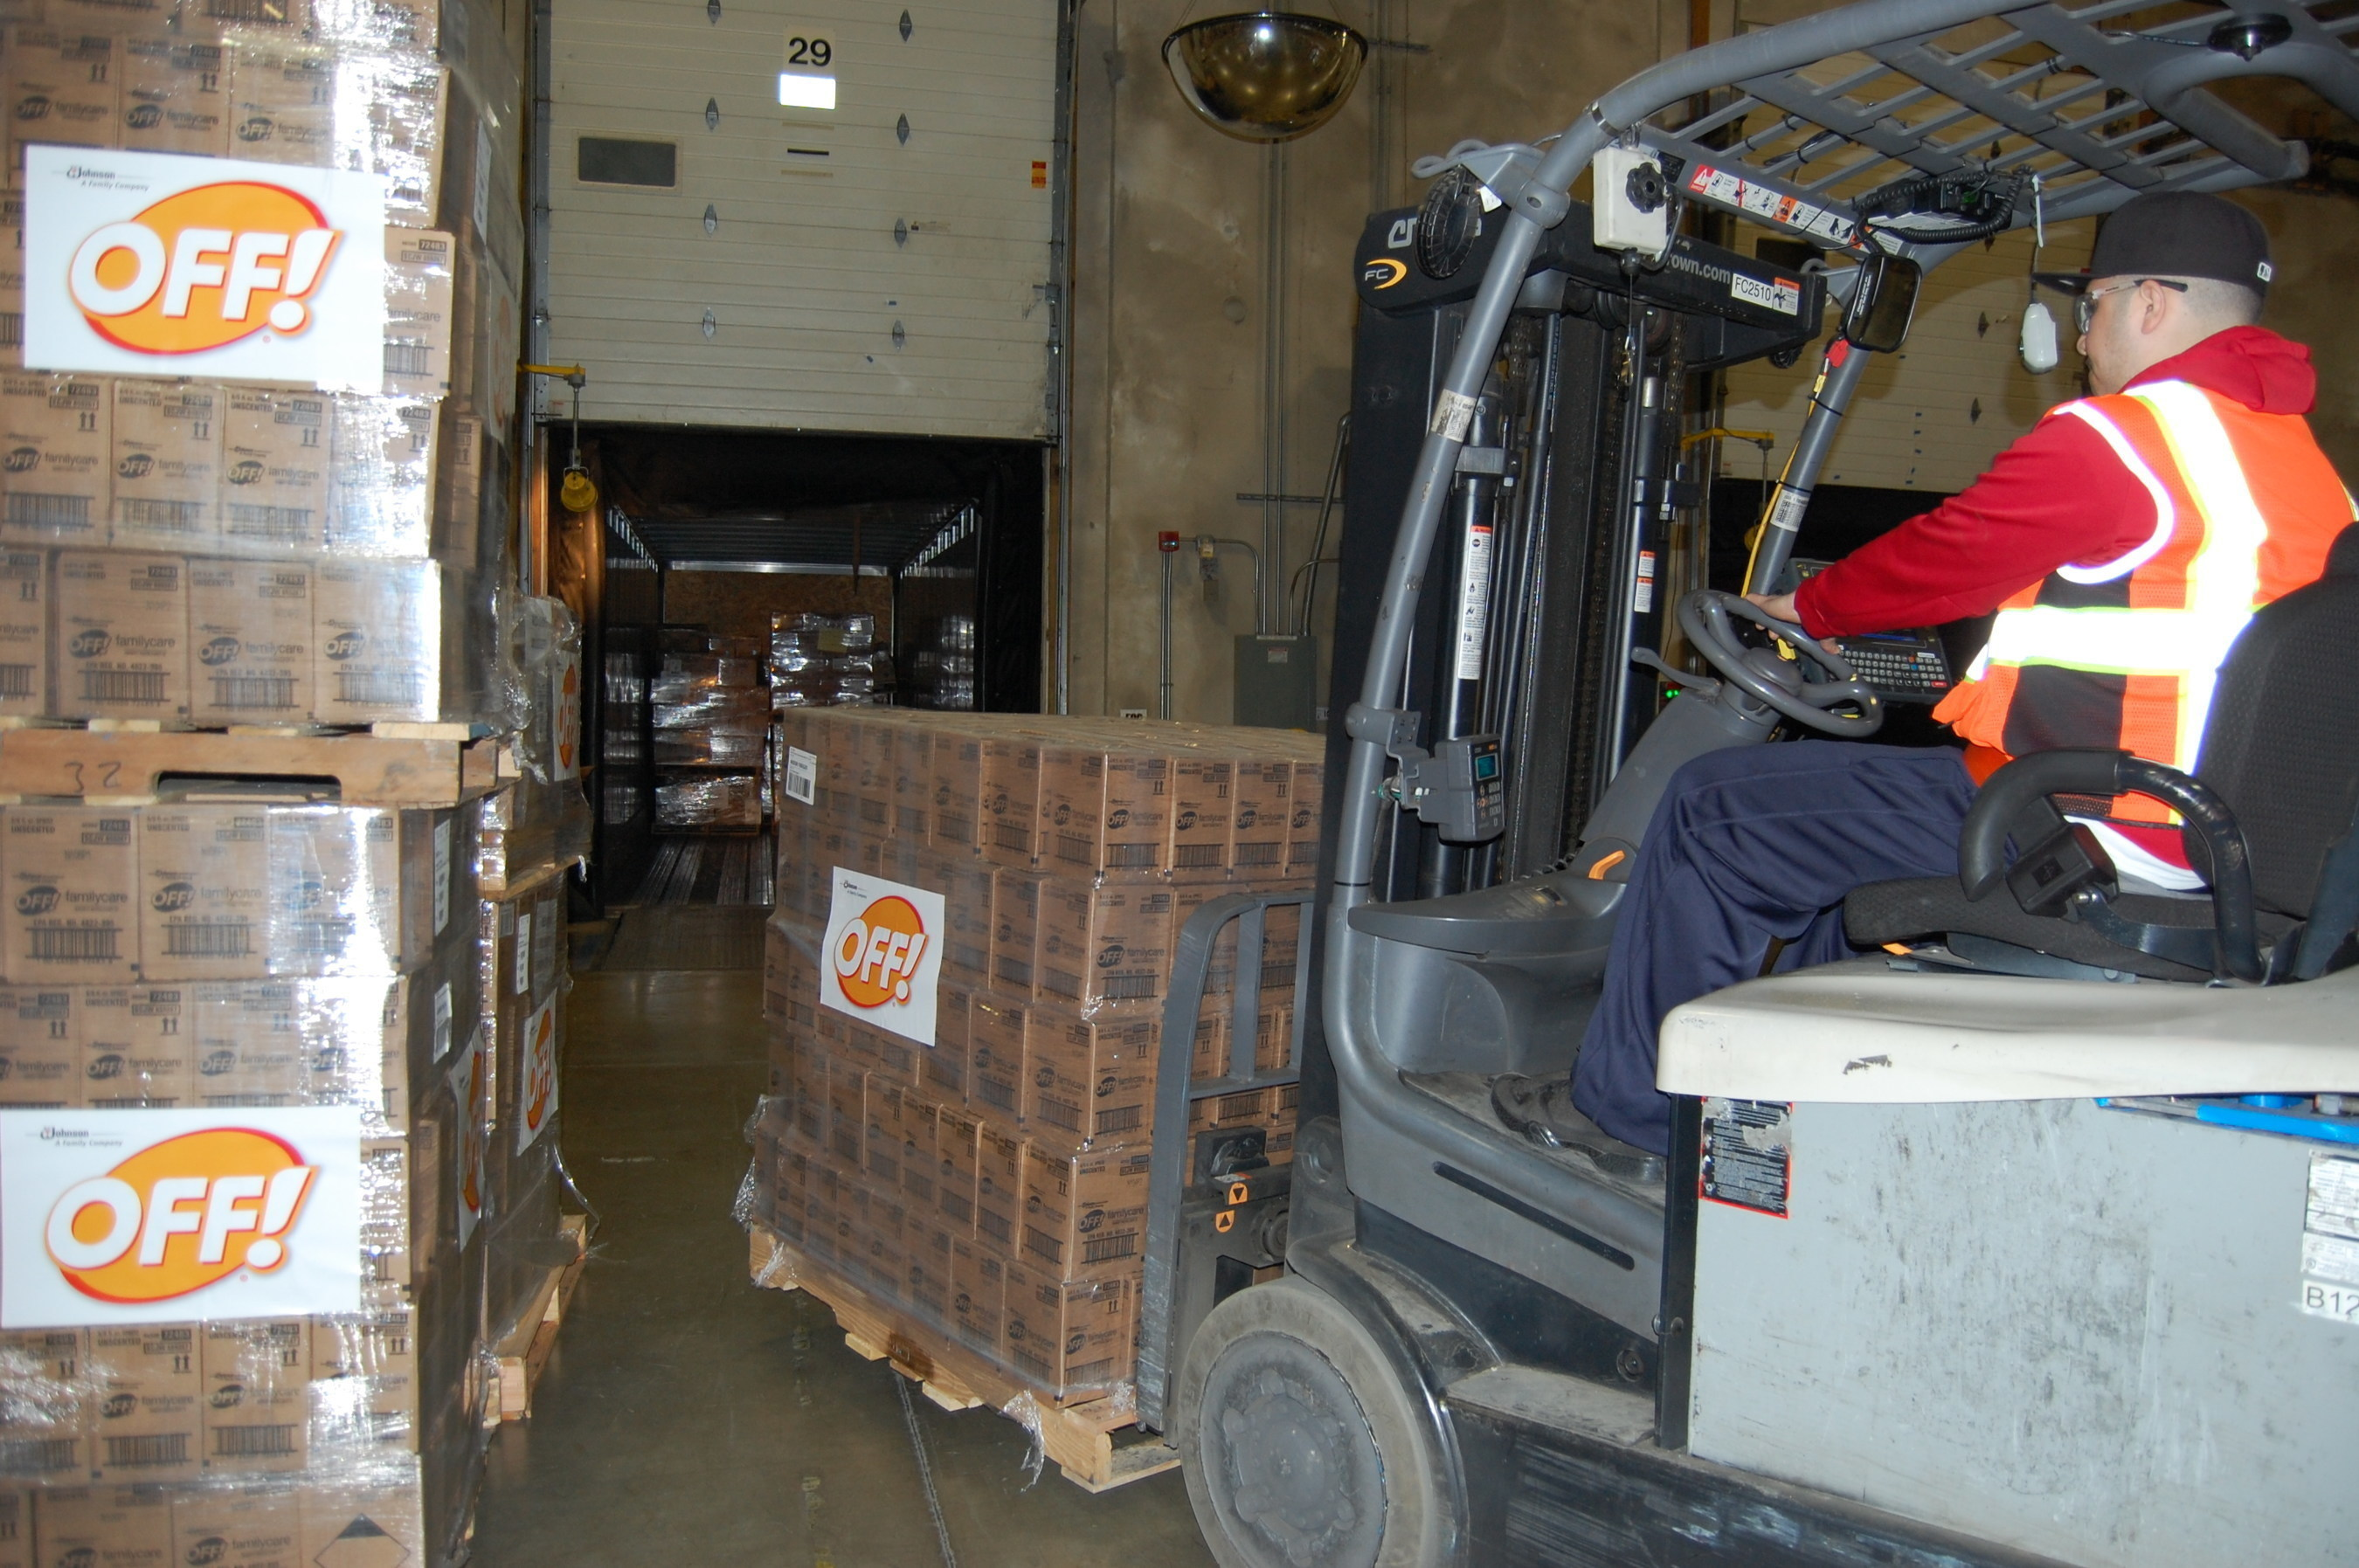 Donated OFF! products from SC Johnson being loaded for shipping to leading organizations that will distribute to the needy.